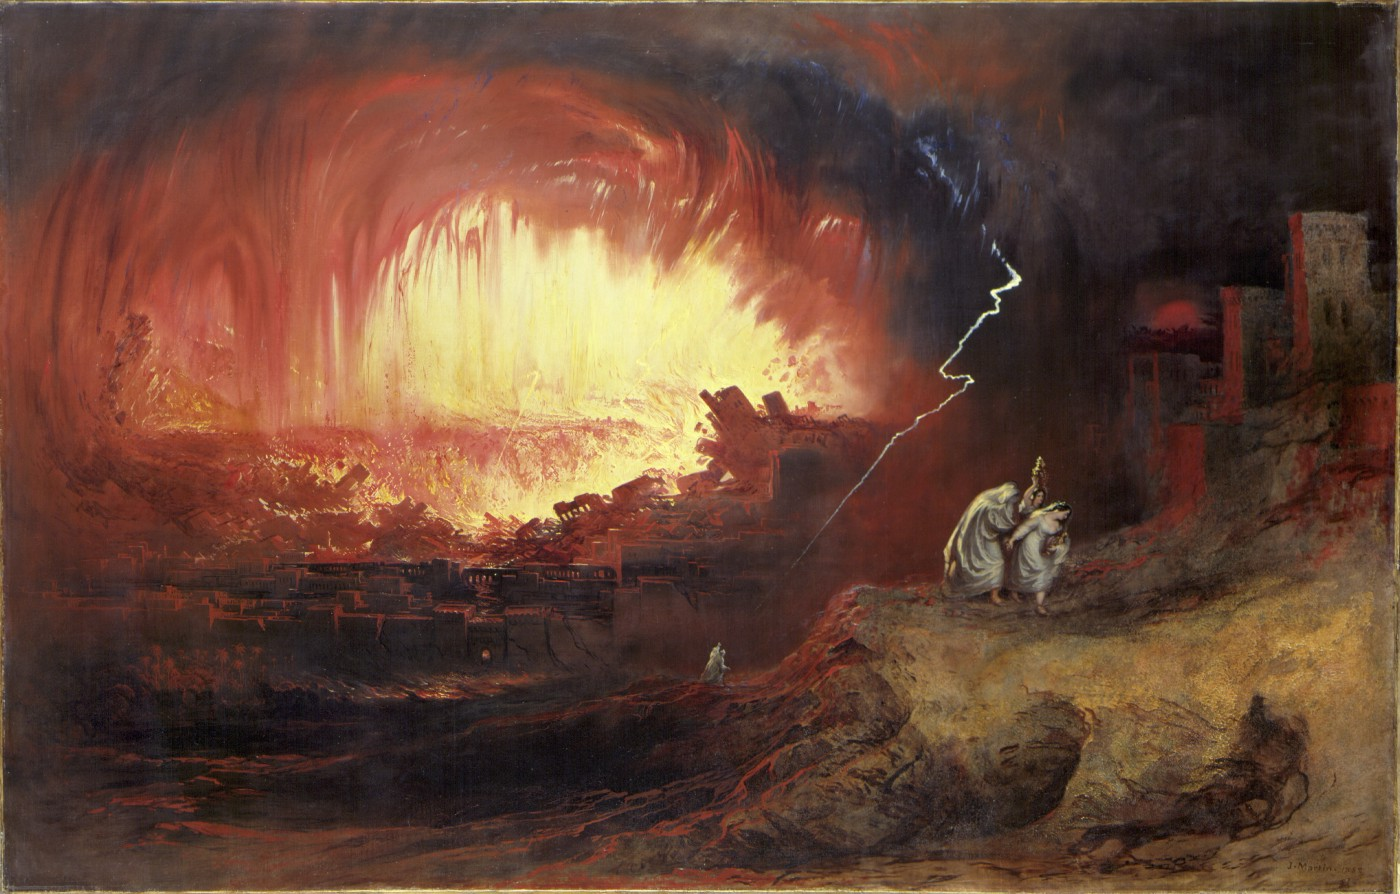 Painting depicting the destruction of a city with fire